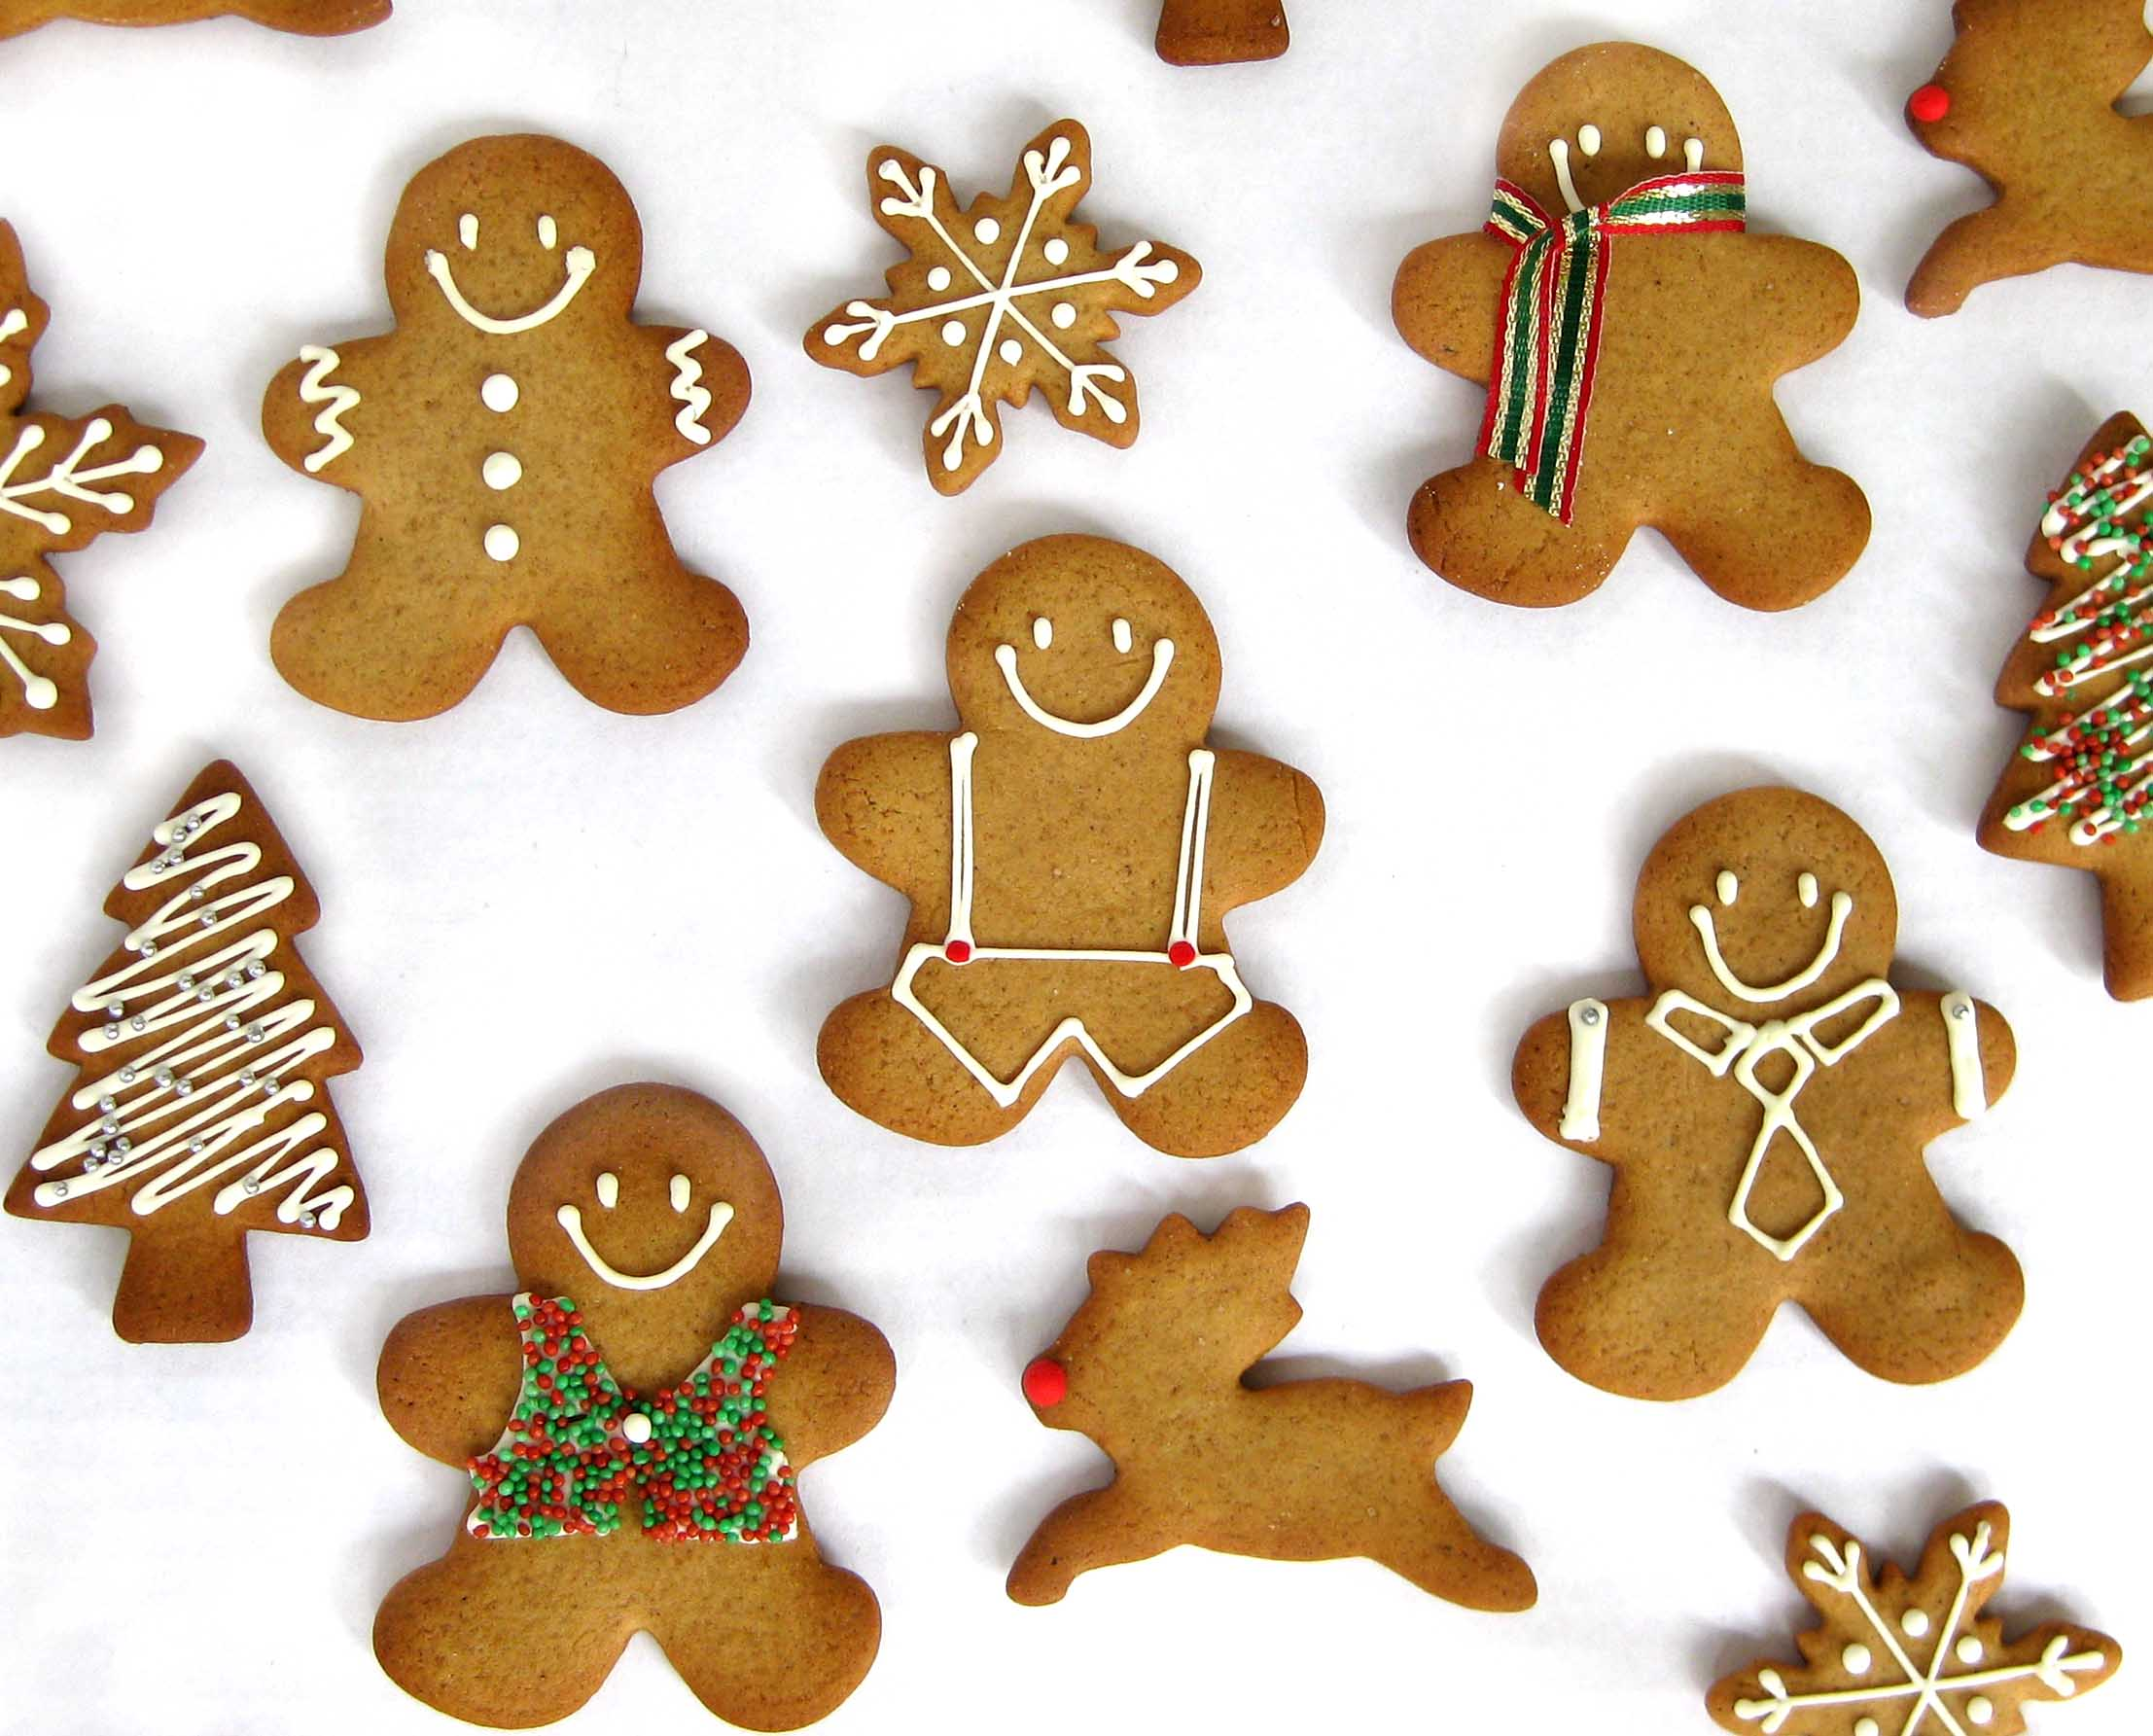 https://thecookieshop.files.wordpress.com/2009/11/gingerbread.jpg